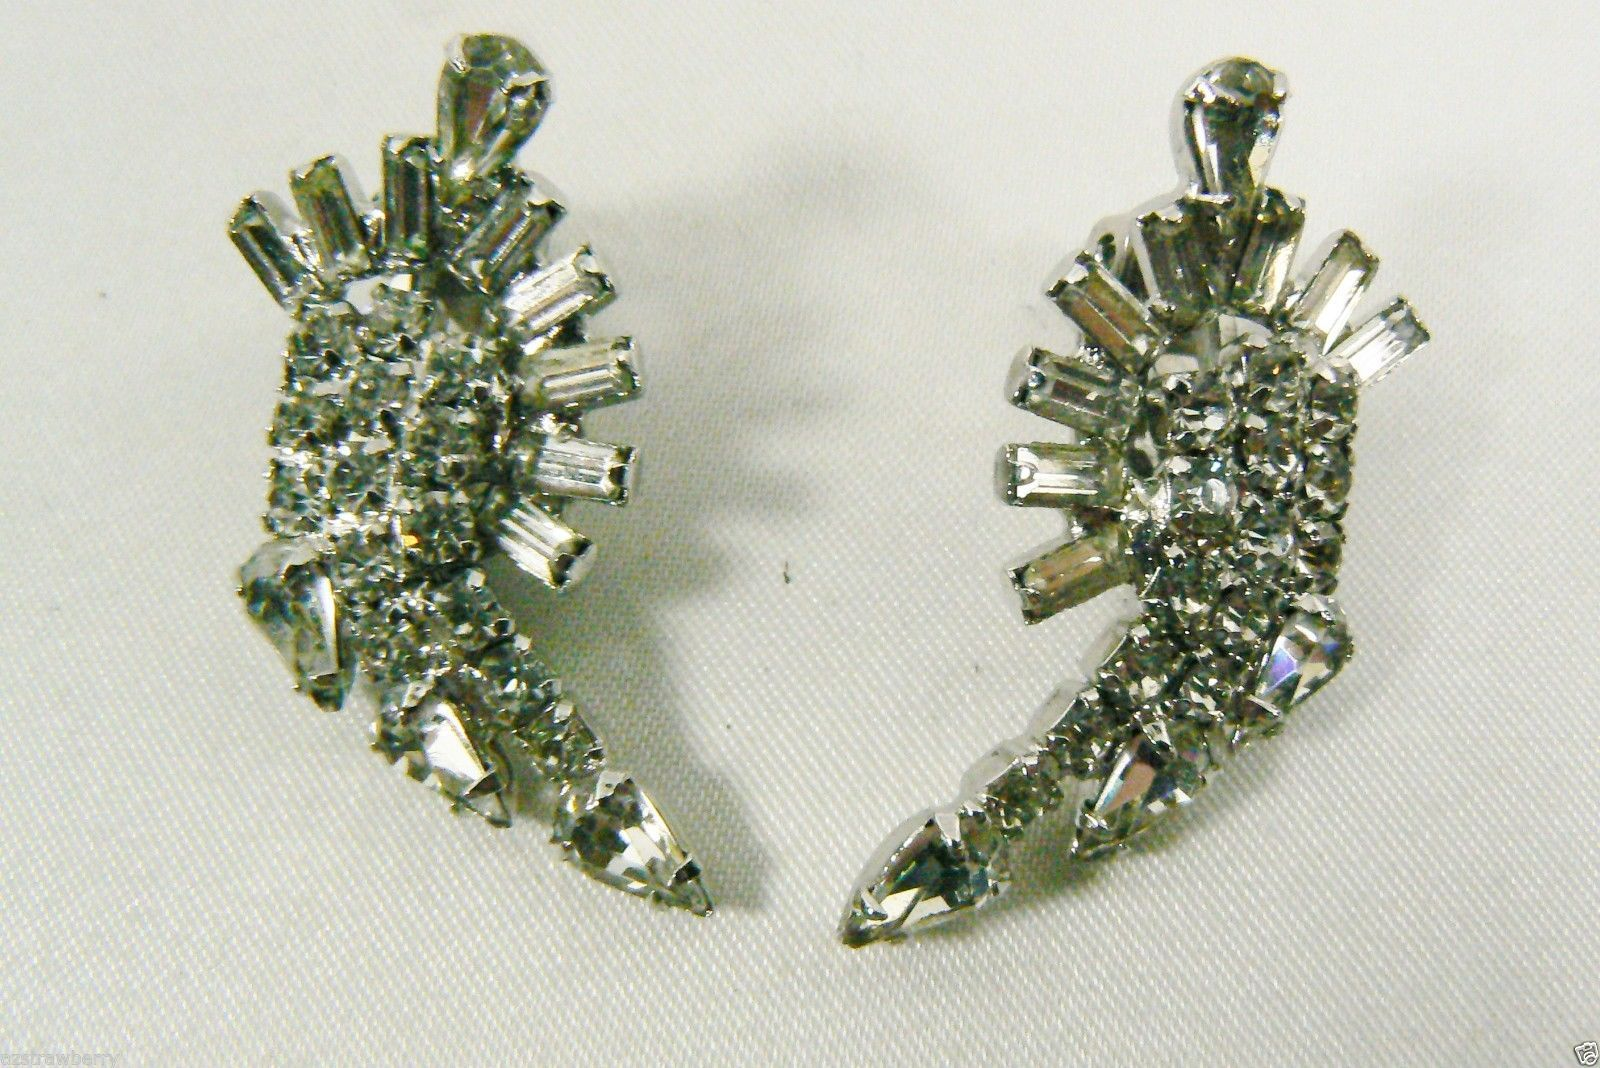 Primary image for VINTAGE SILVER TONE METAL CRYSTAL RHINESTONE CROWNED DESIGN CLIP EARRINGS